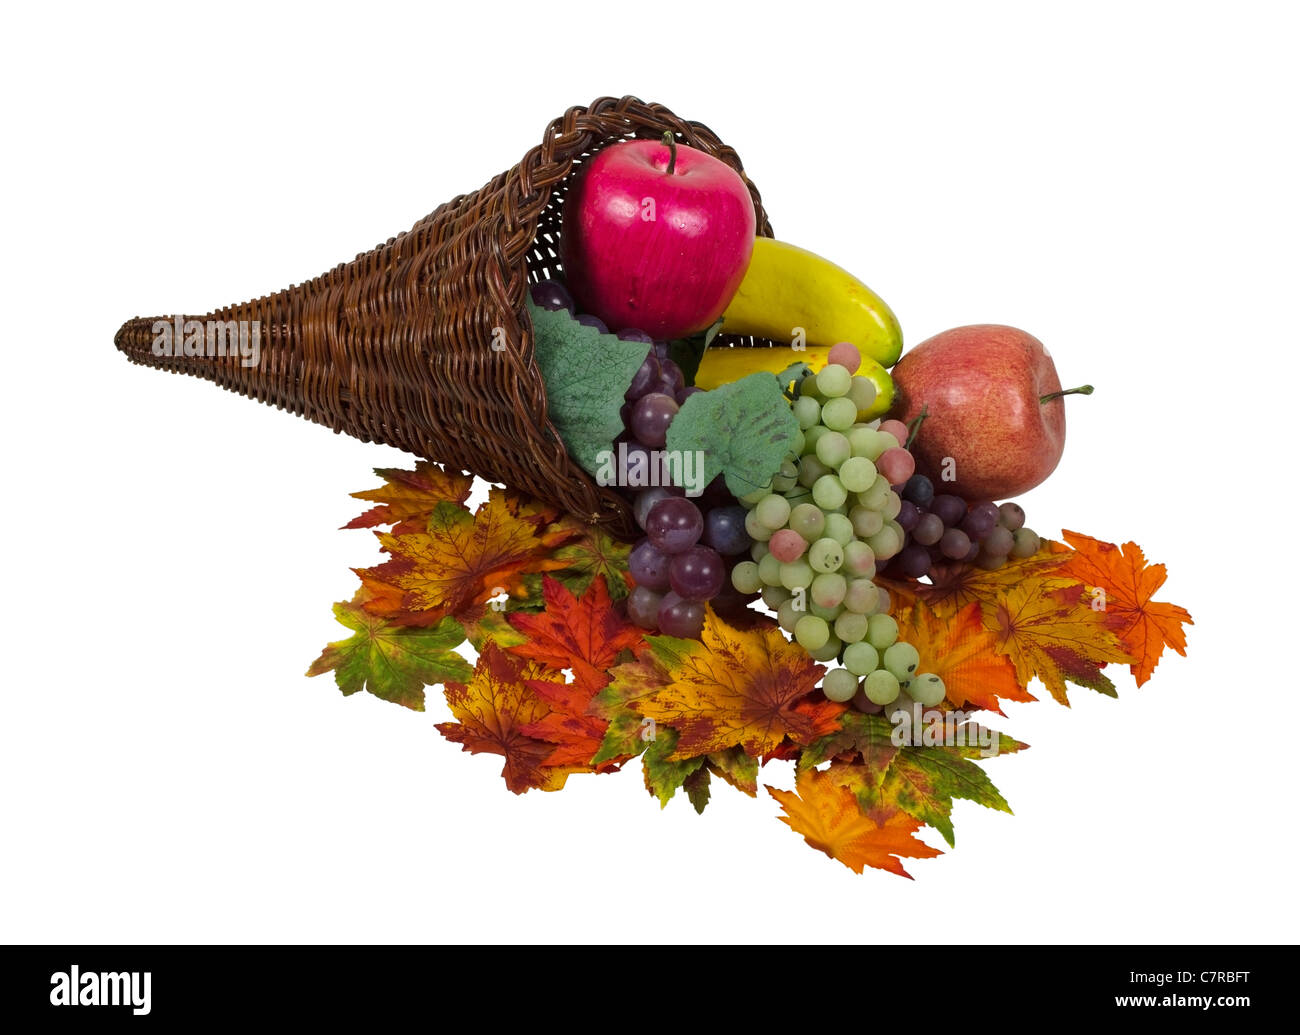 Wicker horn cornucopia which is symbolic for plentiful abundance with colorful fruit and leaves - path included - Stock Image